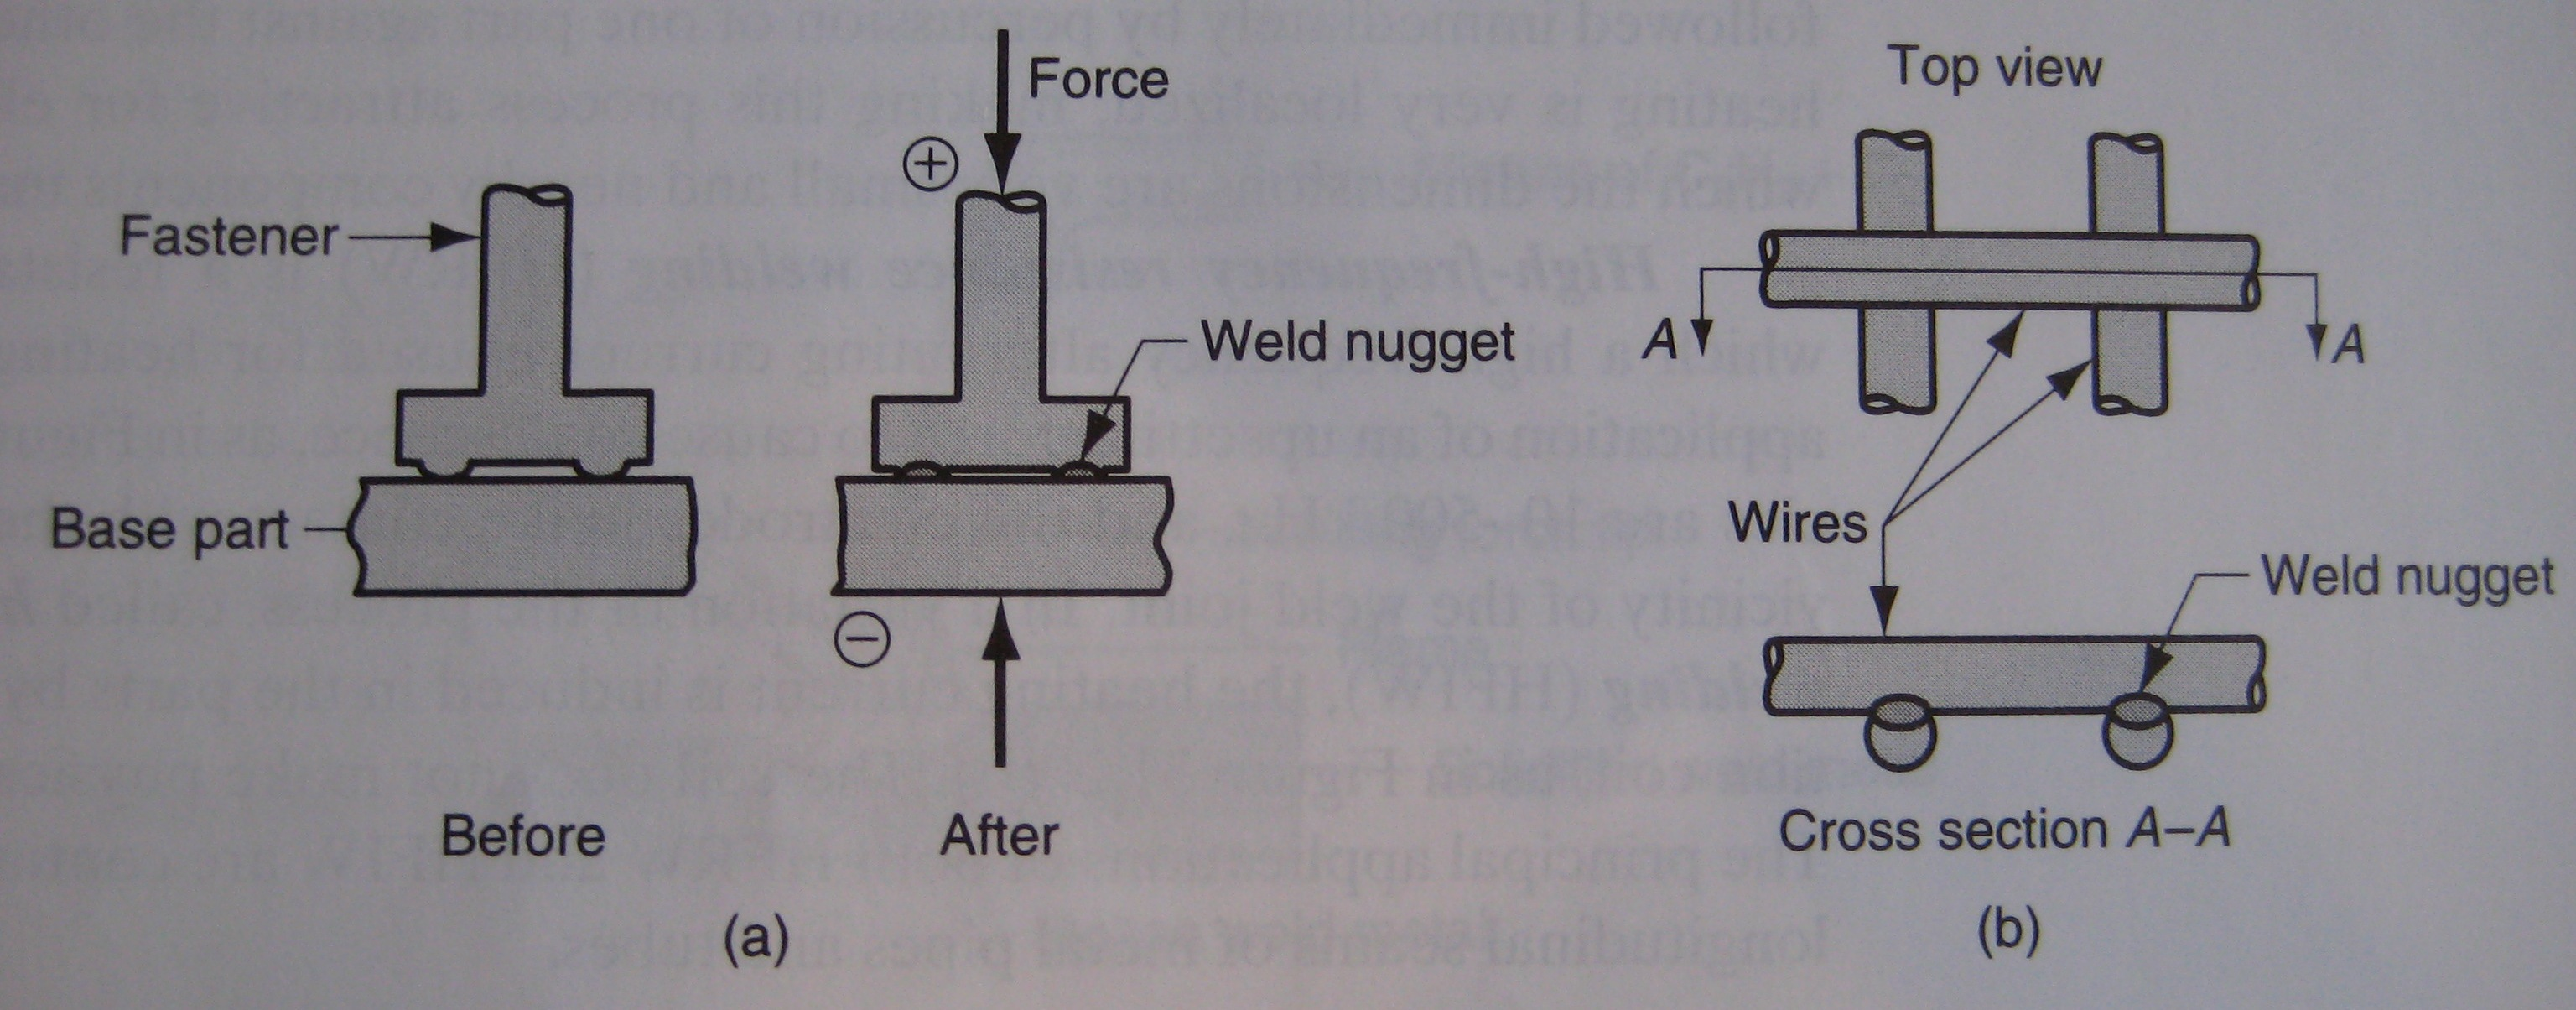 Welding Valuable Mechanisms The Design Engineering Blog Of Diffusion Diagram 1